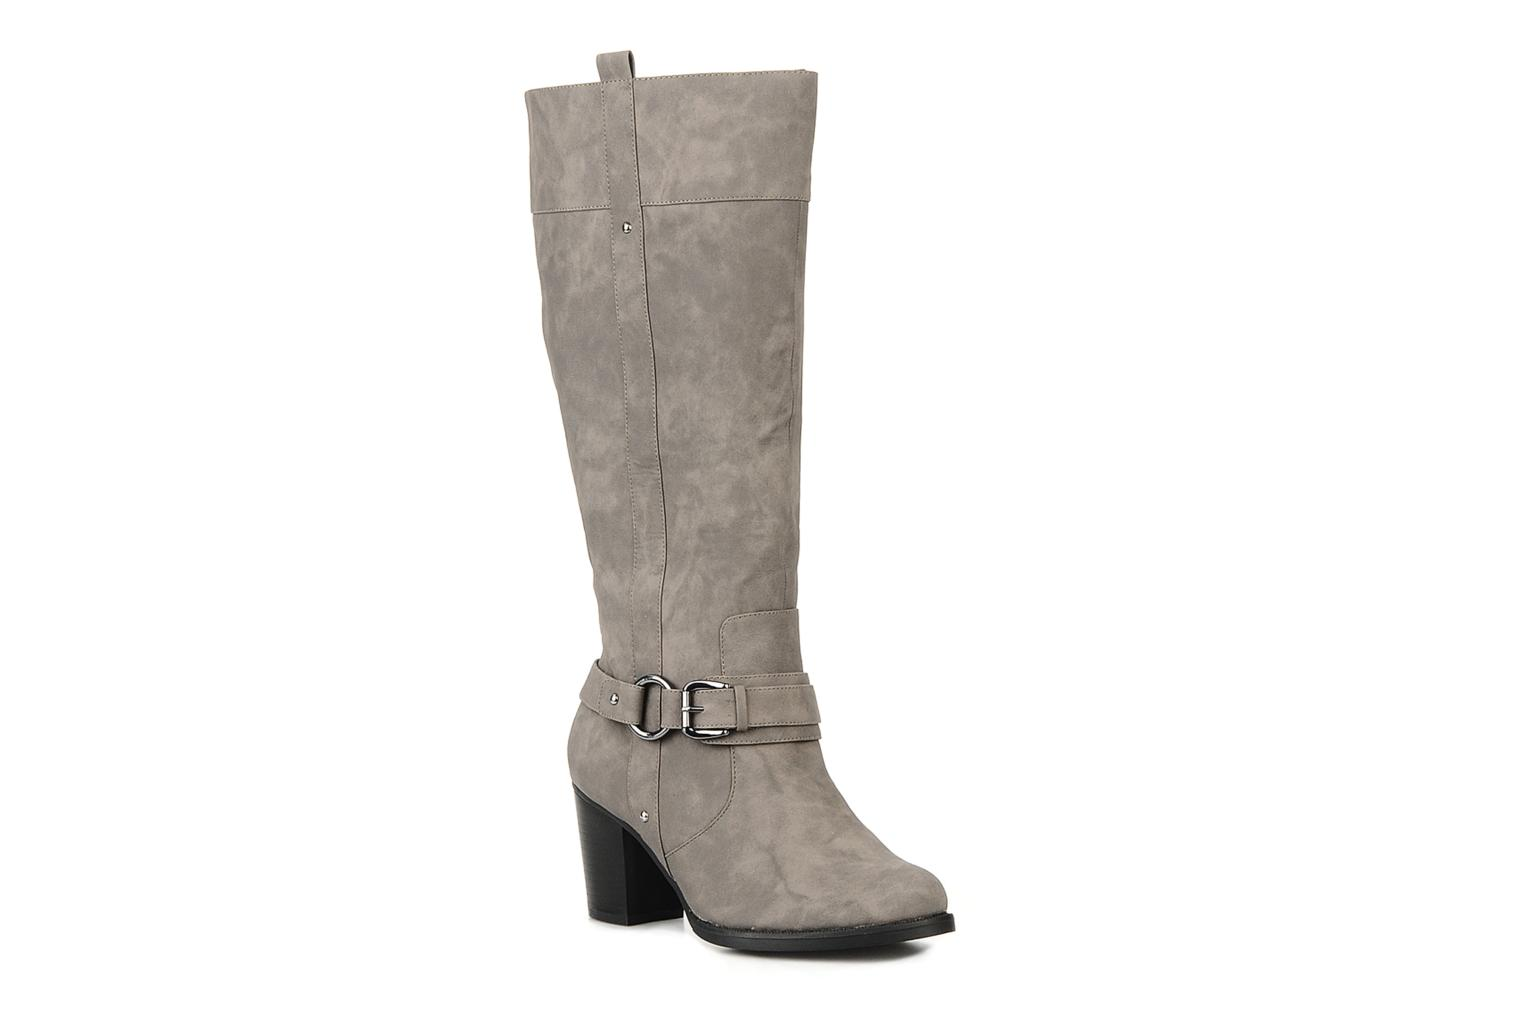 Marques Chaussure femme I Love Shoes femme Clarita Grey